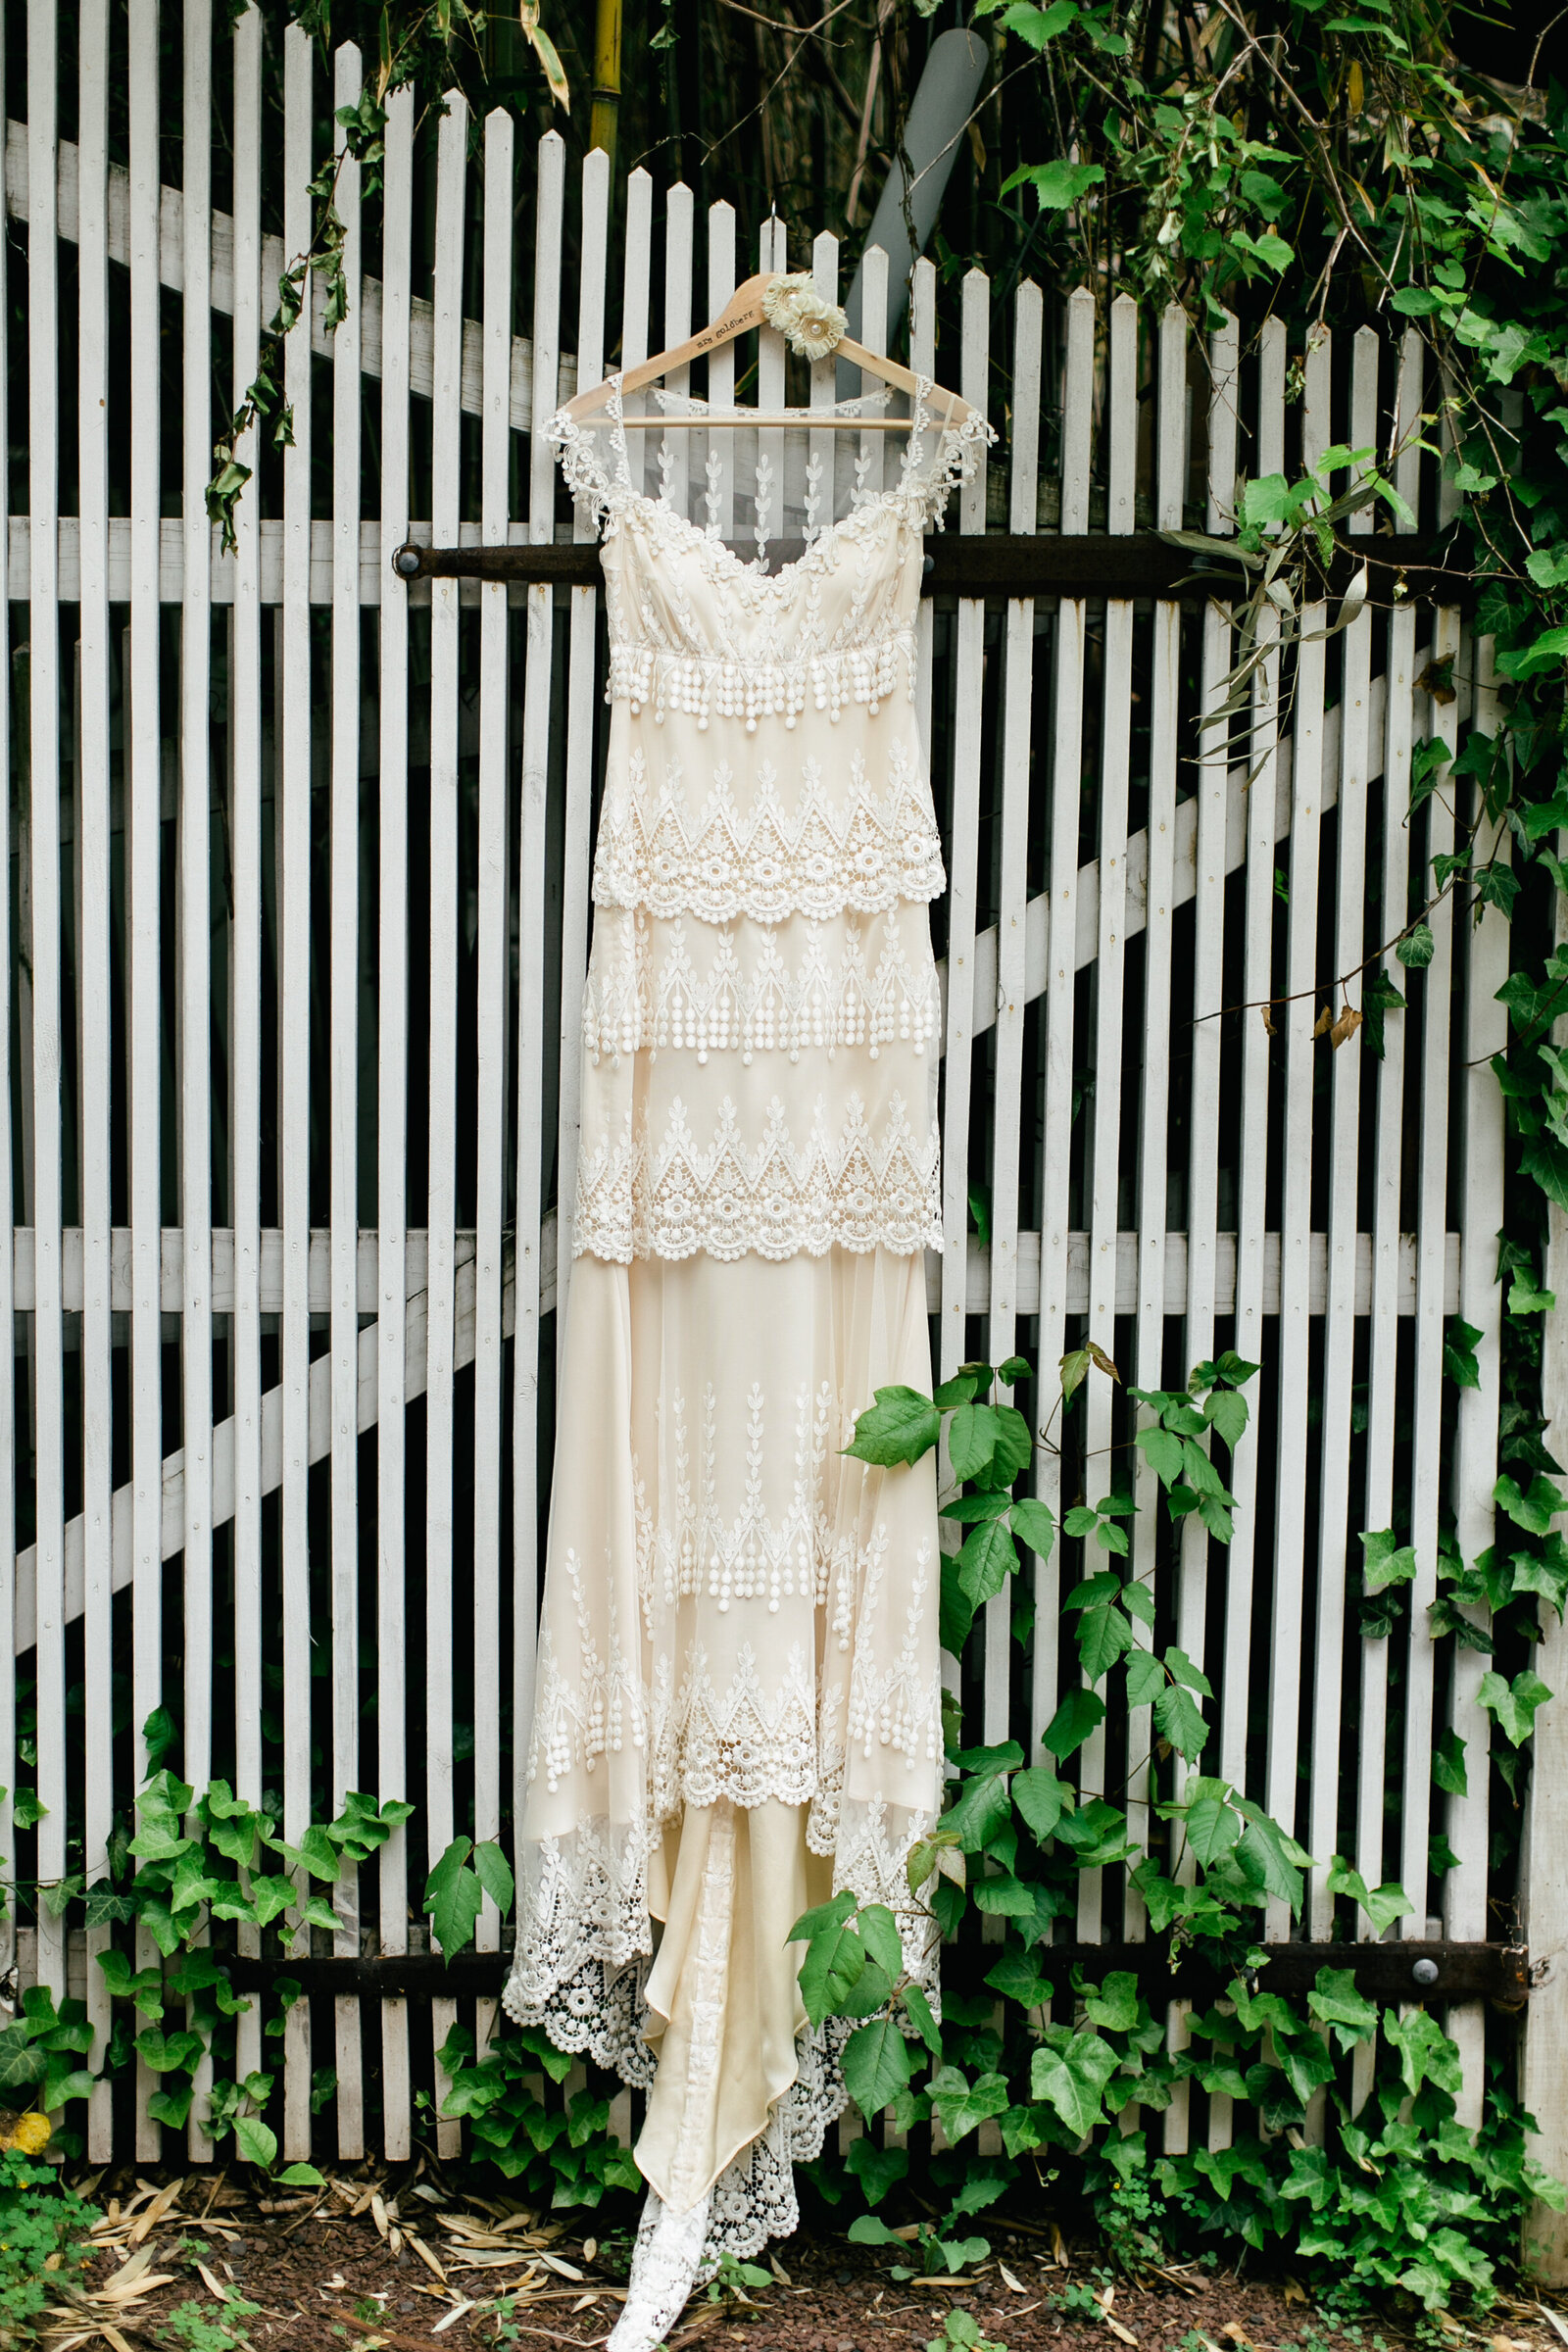 brides lace wedding dress hanging outside